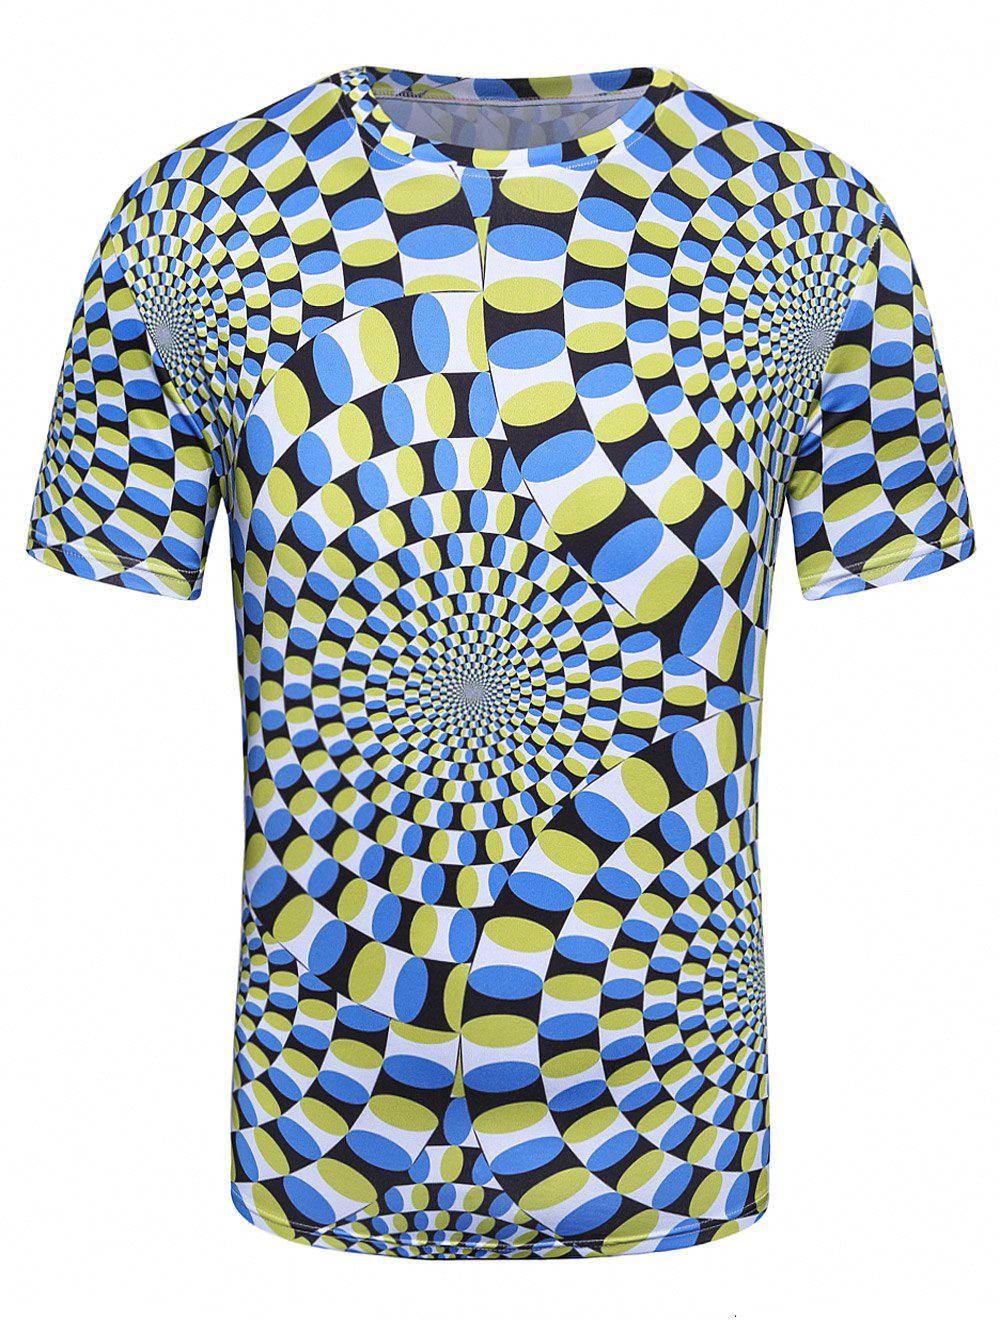 Crew Neck 3D Spiral Print Trippy T-Shirt - COLORMIX XL